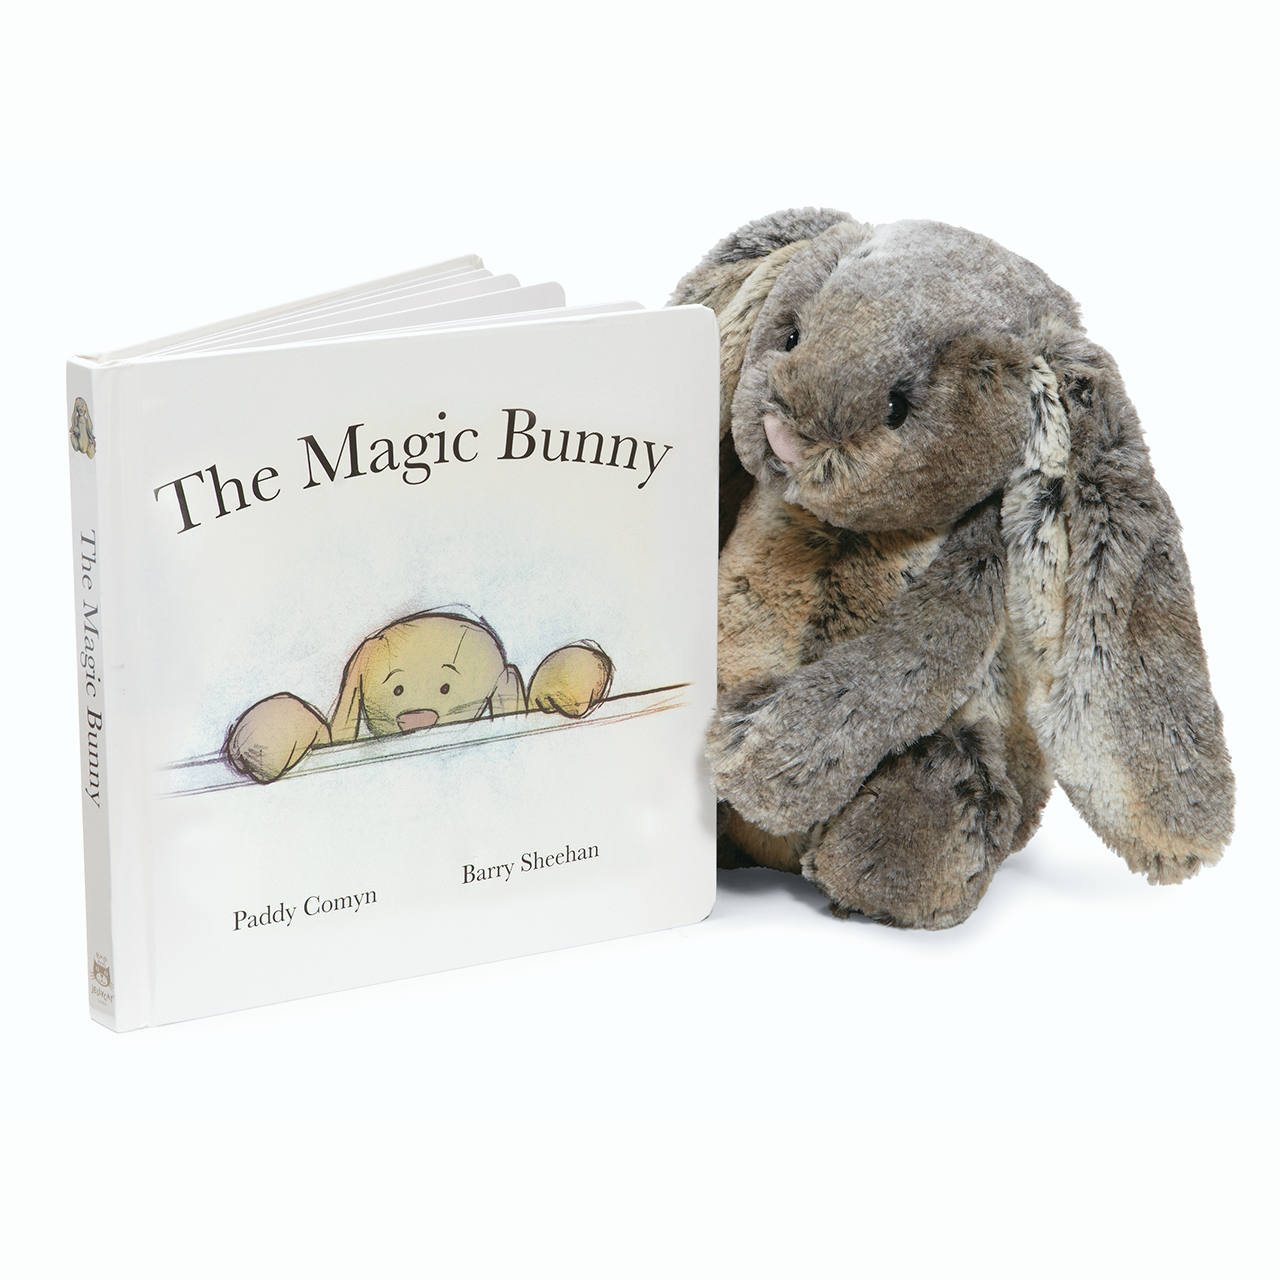 Jellycat Books The Magic Bunny | James Anthony Collection